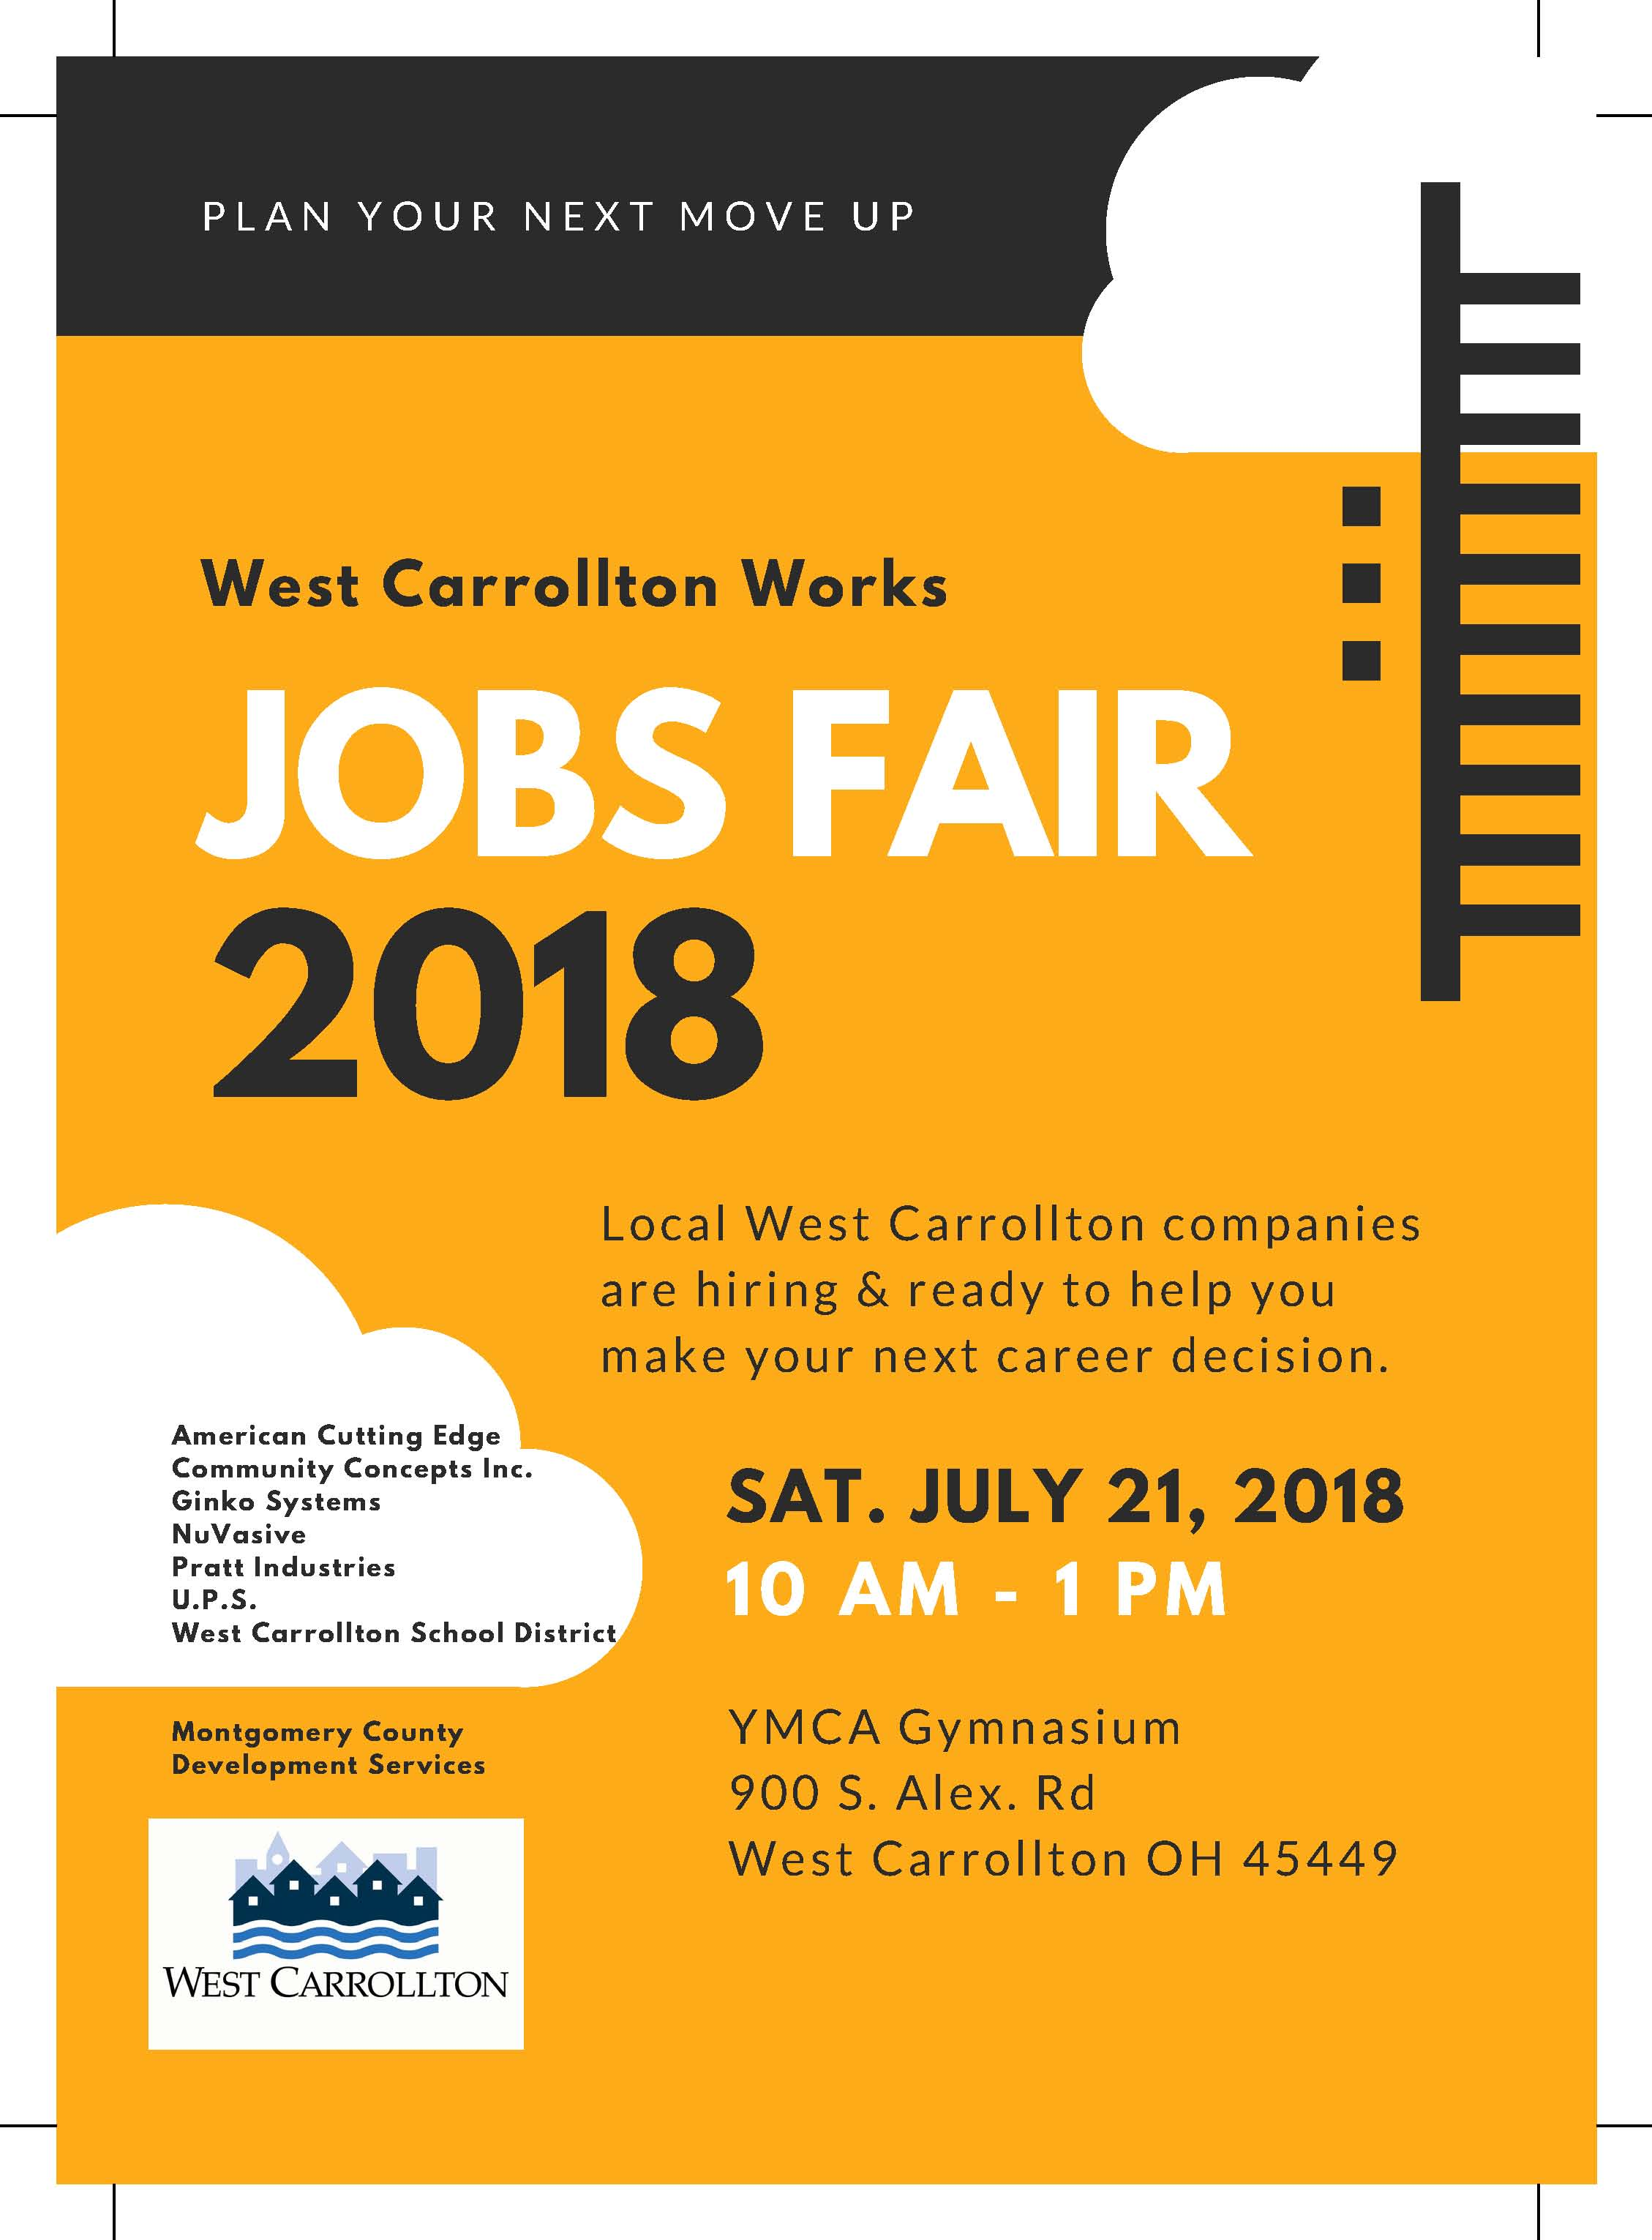 Jobs Fair Flyer